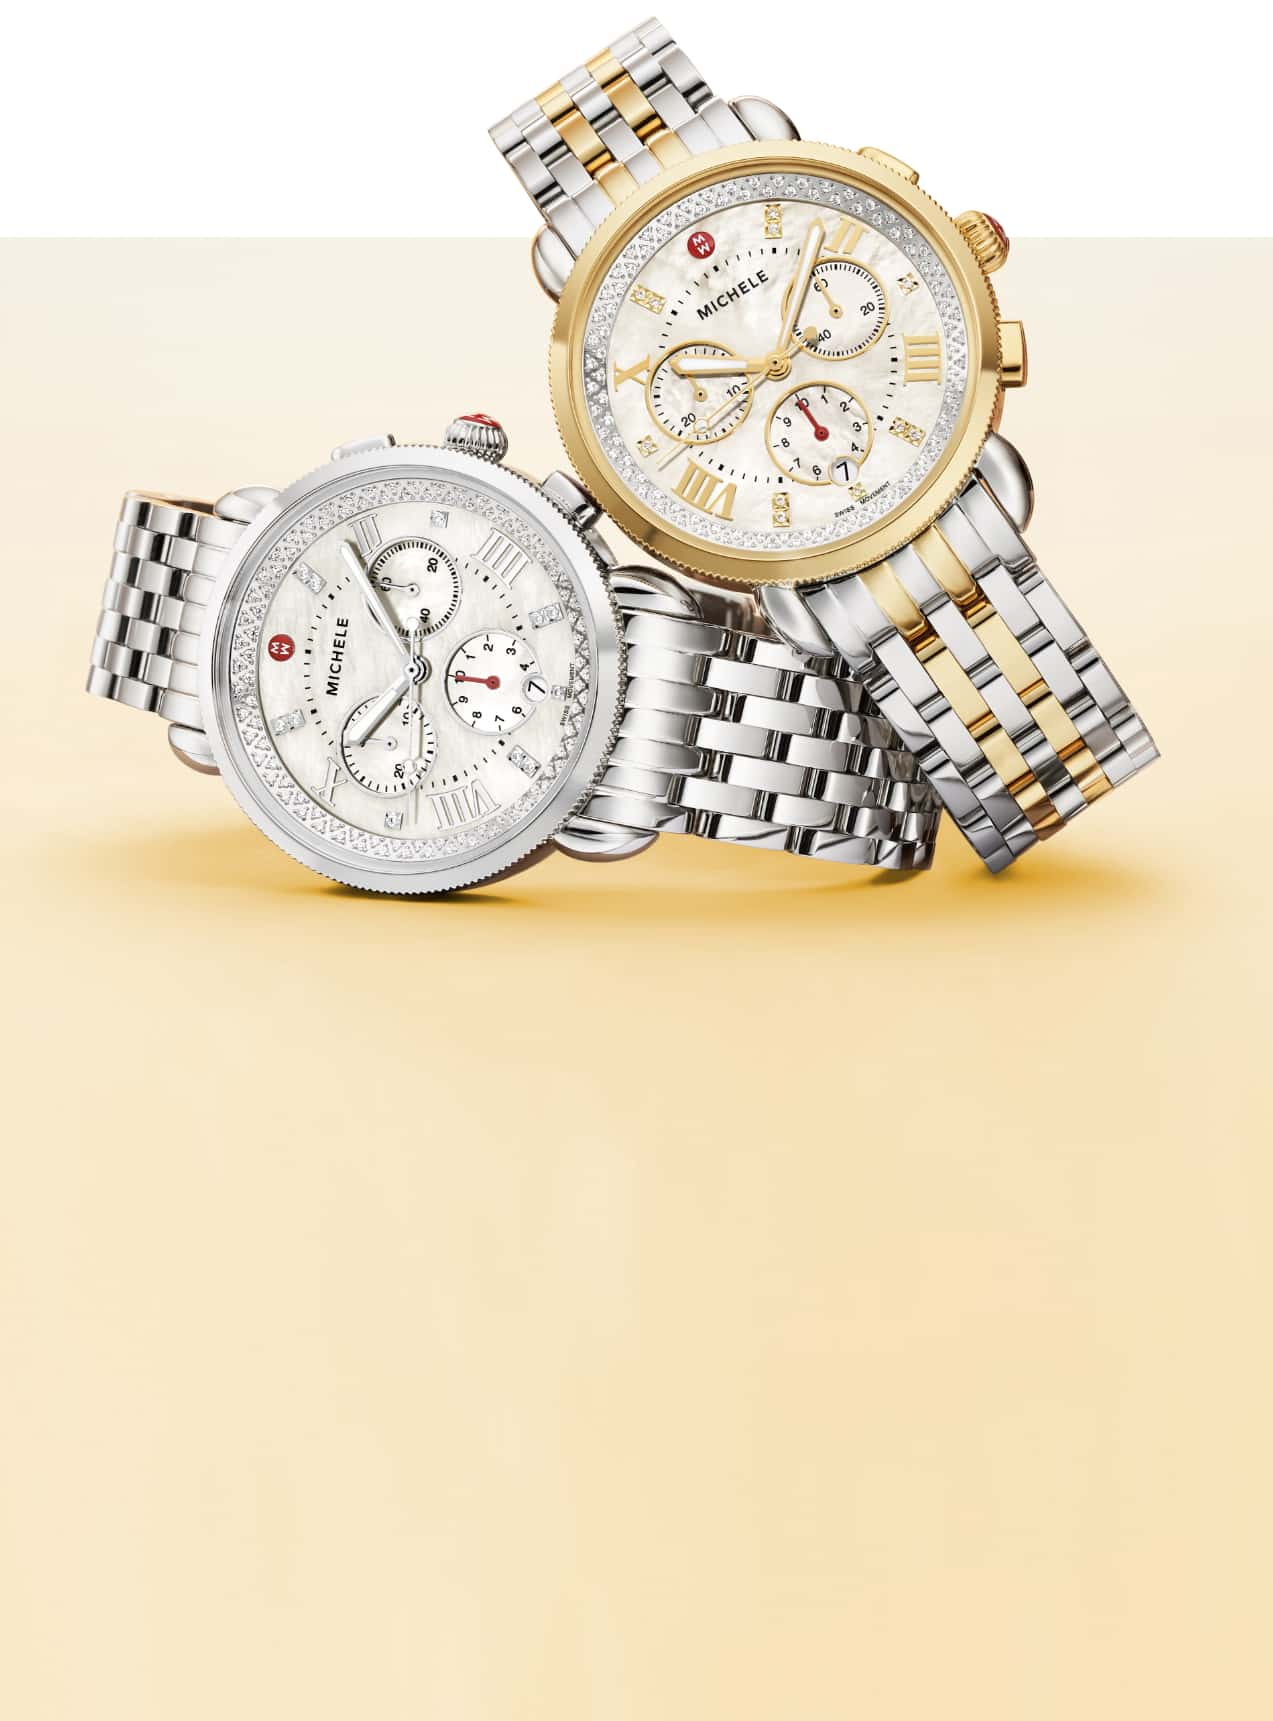 Two Sport Sail watches in stainless and two-tone with stianless and 18K gold-plating